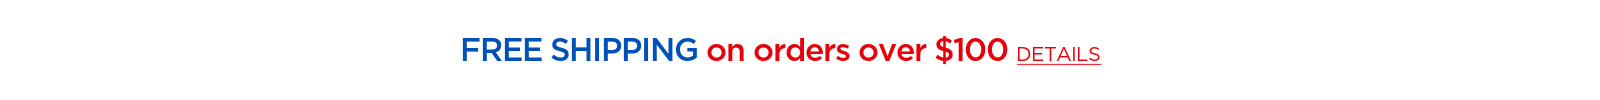 Free Shippin on orders over $100, click for details